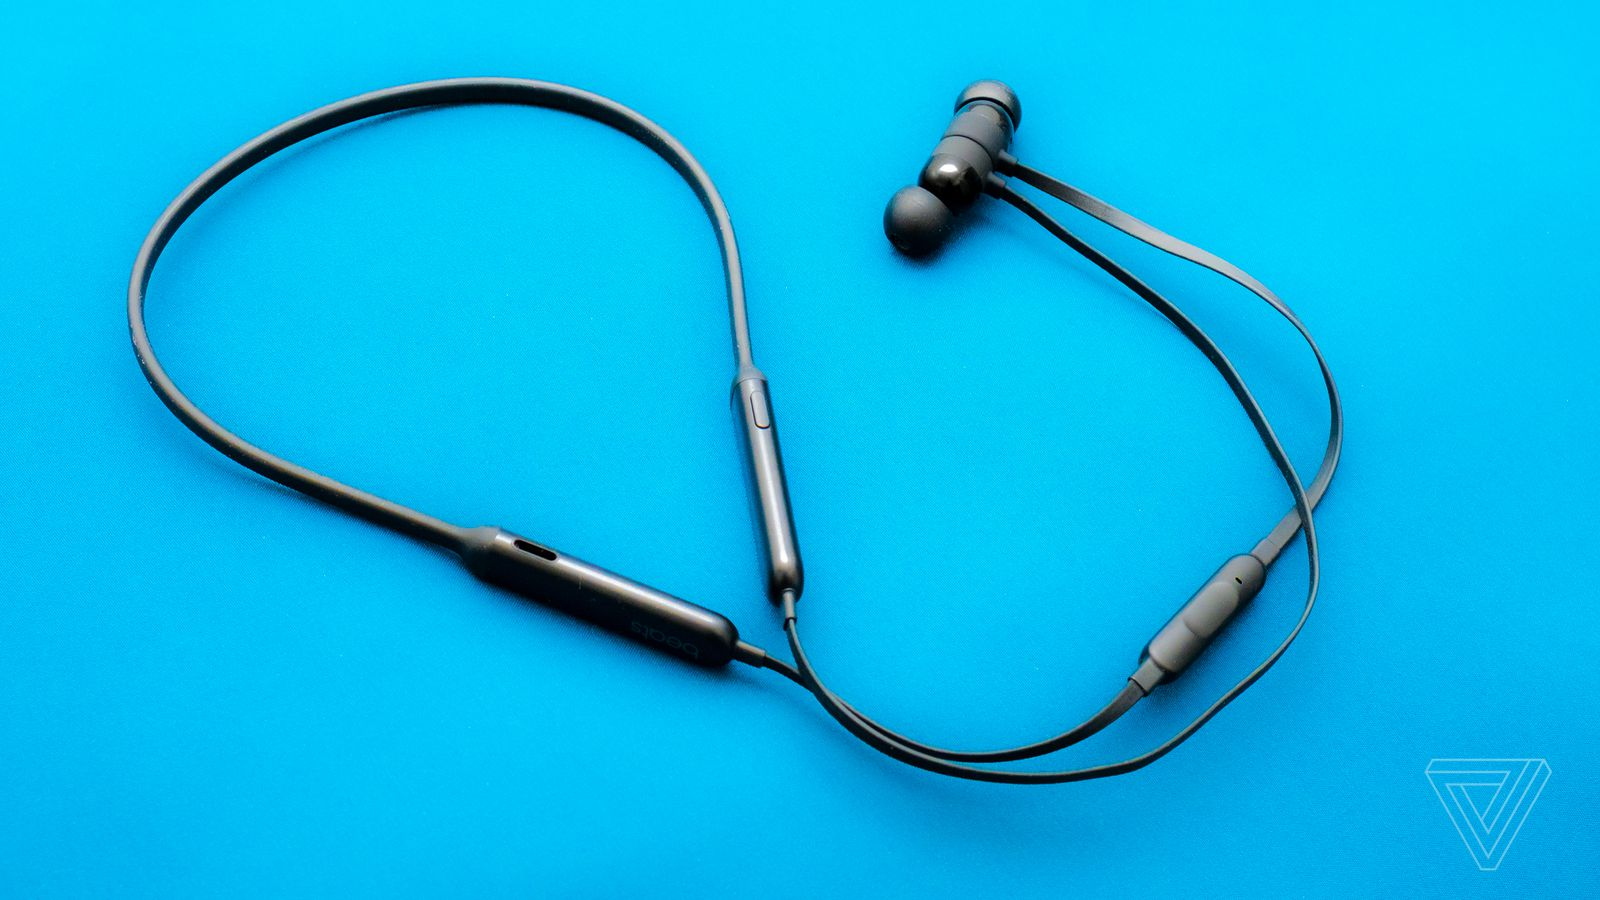 Beats X Review Apples Neckbuds For The Everyday Verge Right Headset With Microphone Diagram Further Wiring